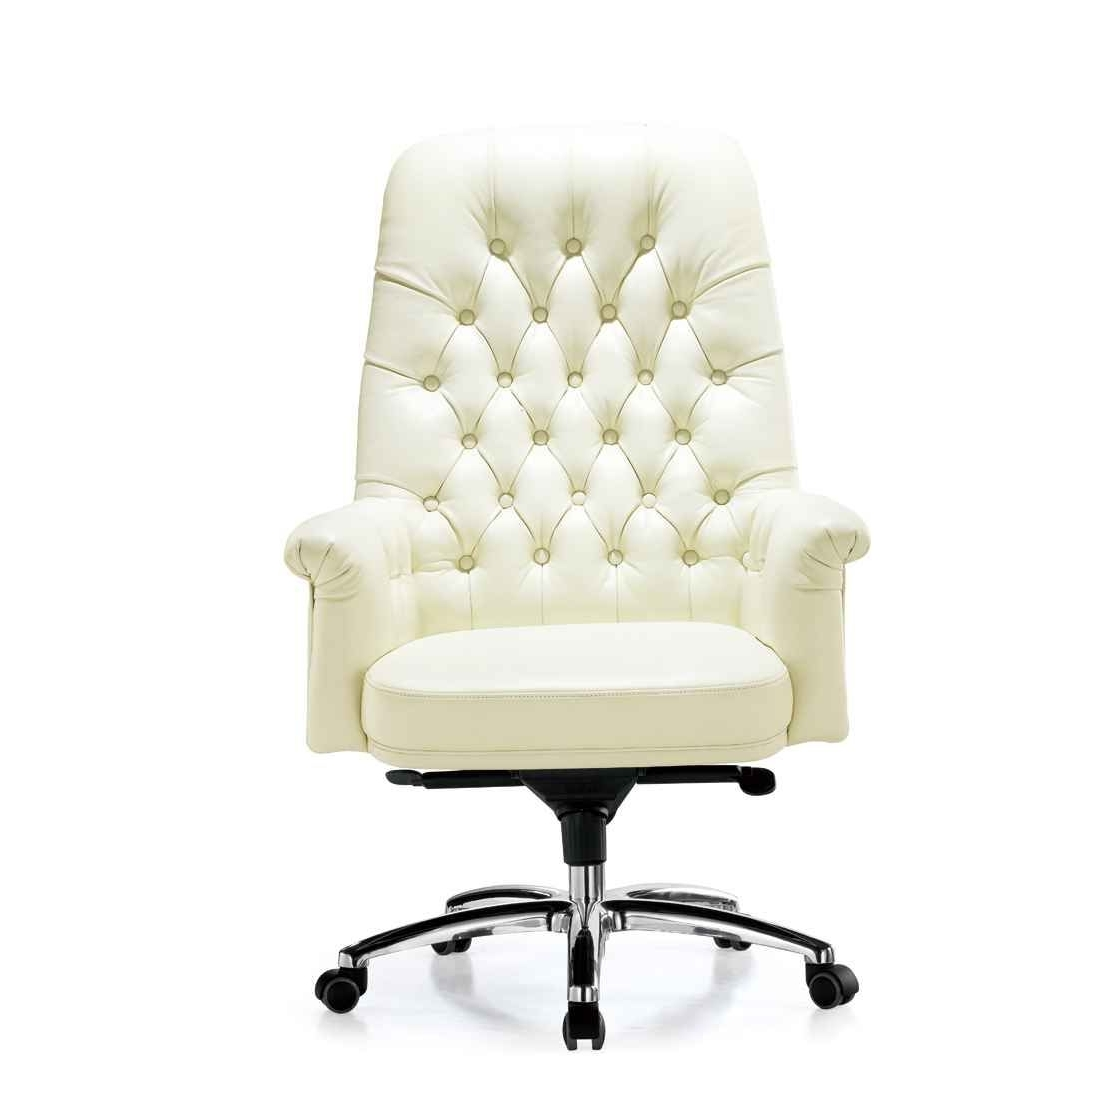 2019 Chair : High Back White Leather Executive Office Chair With Flip For Leather Swivel Recliner Executive Office Chairs (View 1 of 20)